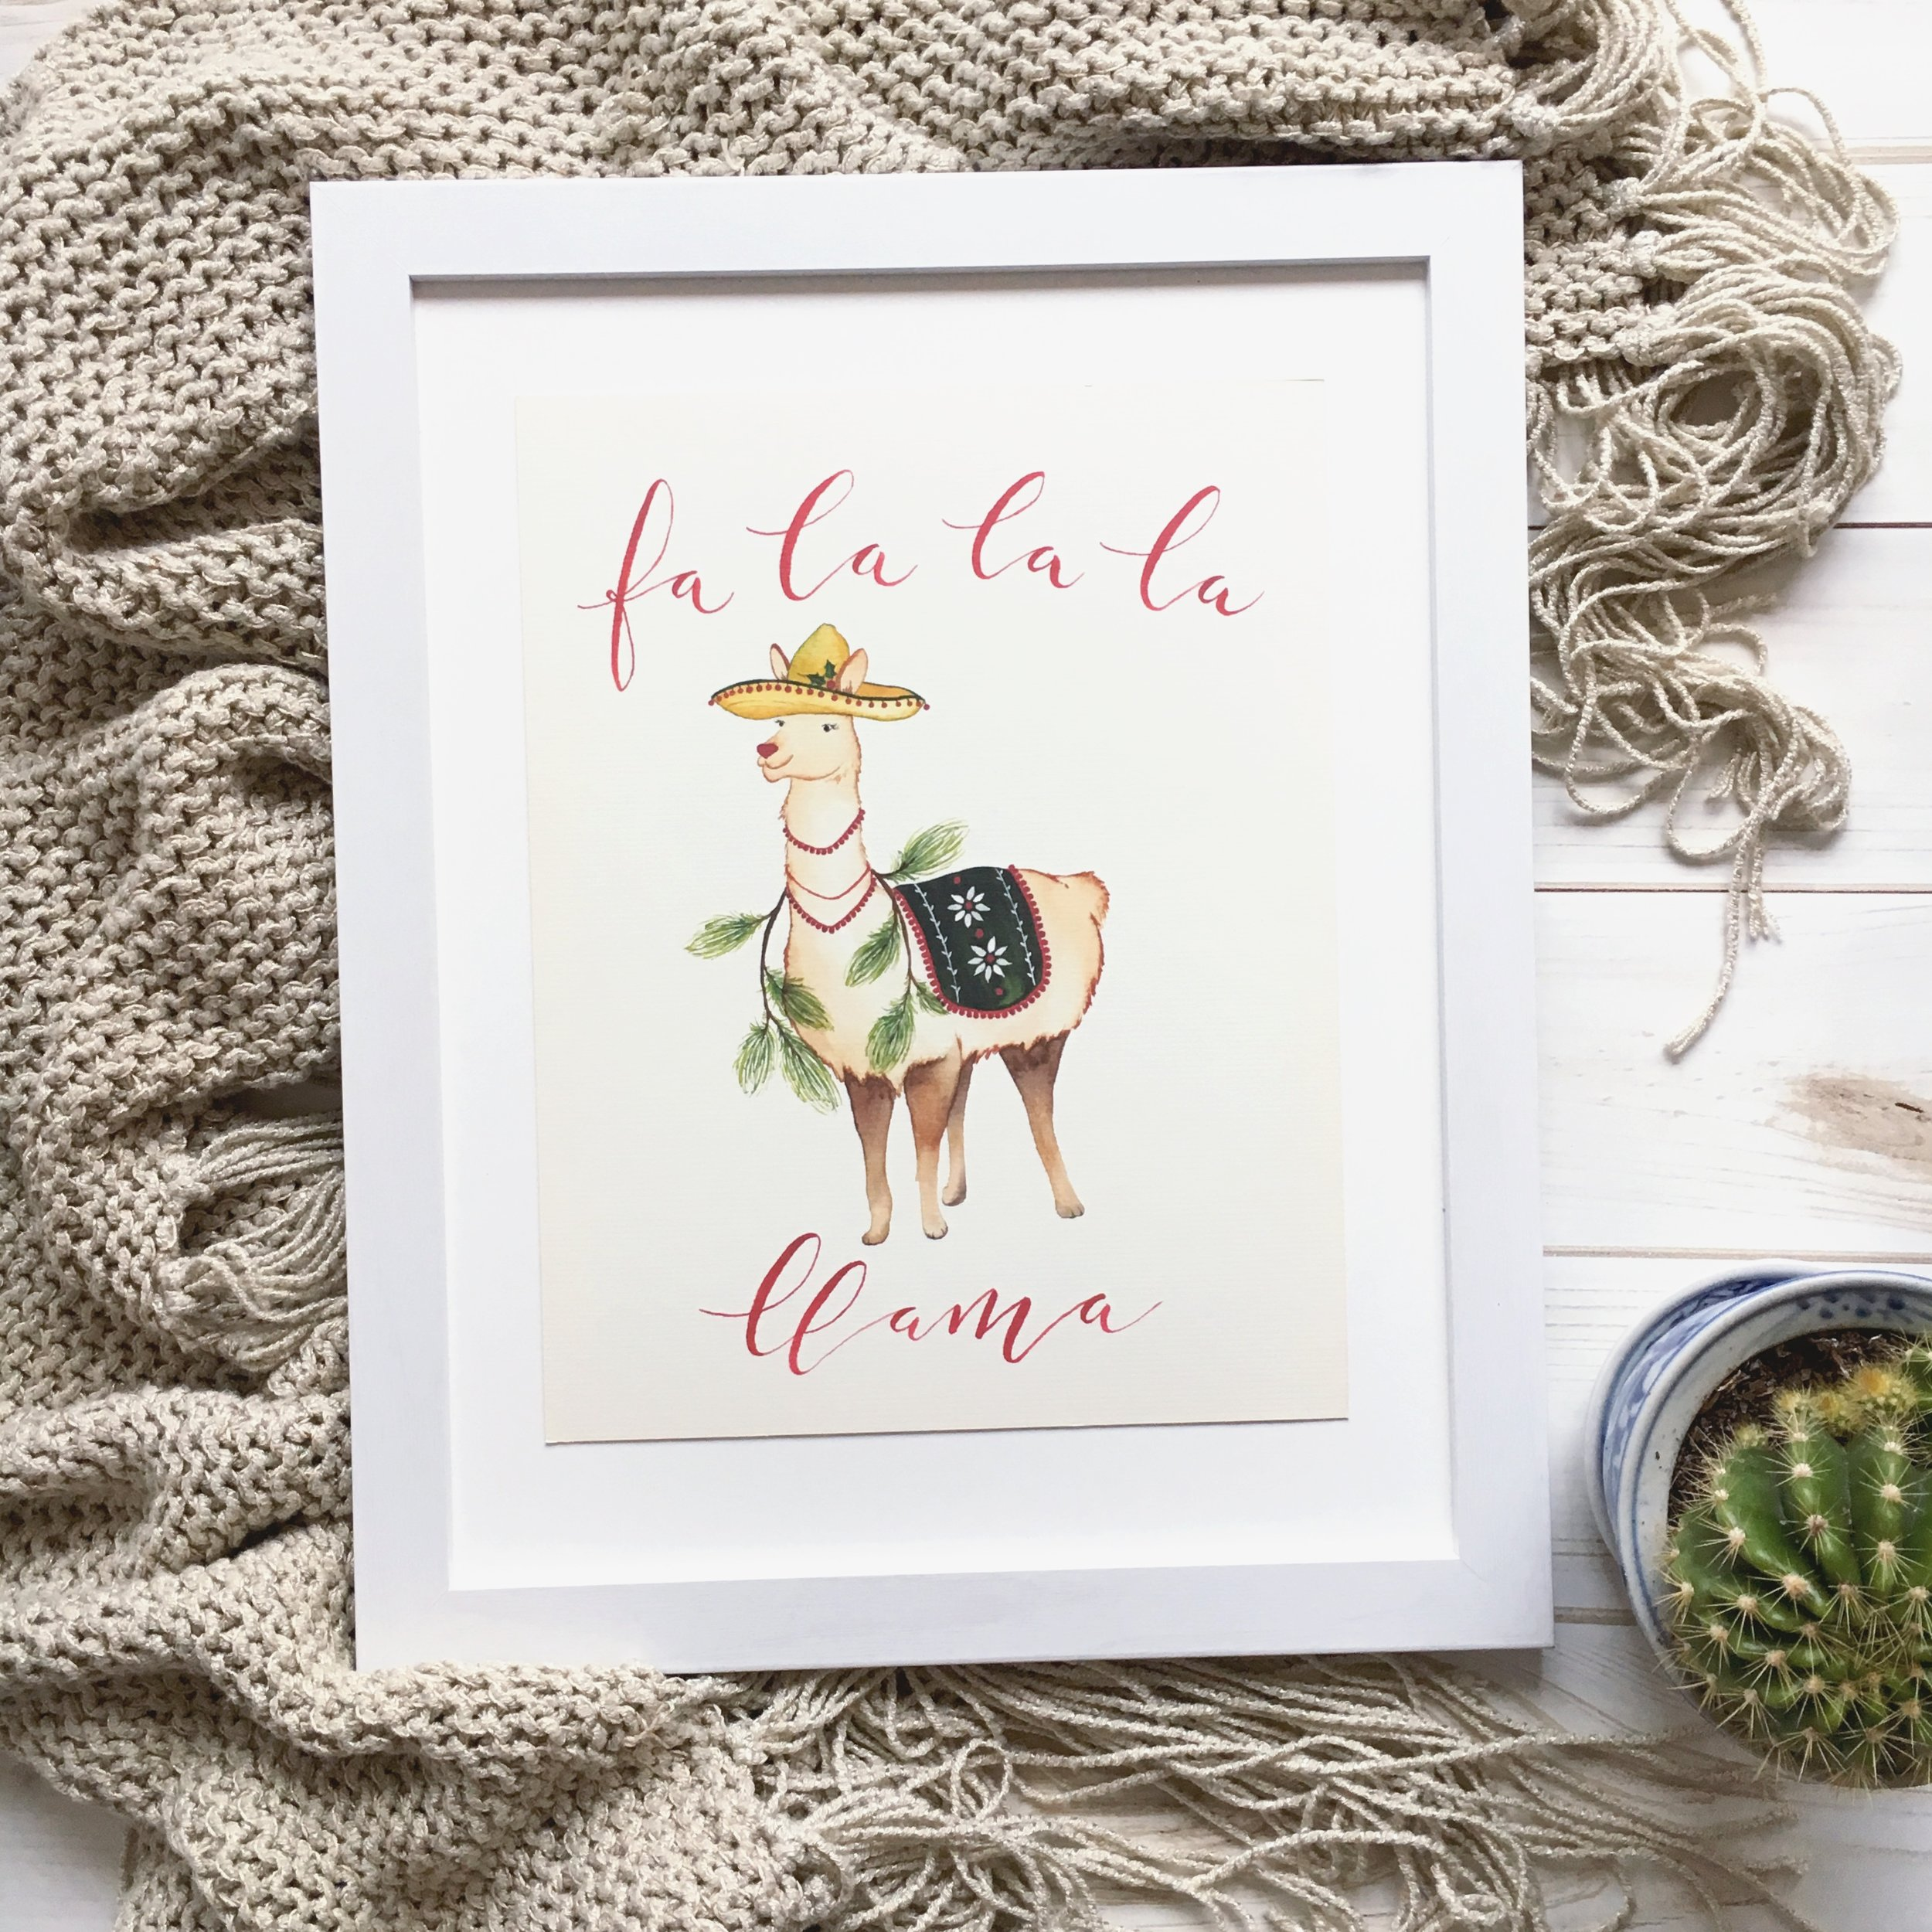 It's so cute! - I'm in love with my llama print! It's so cute. Item shipped quickly and arrived in perfect condition!— D.P.